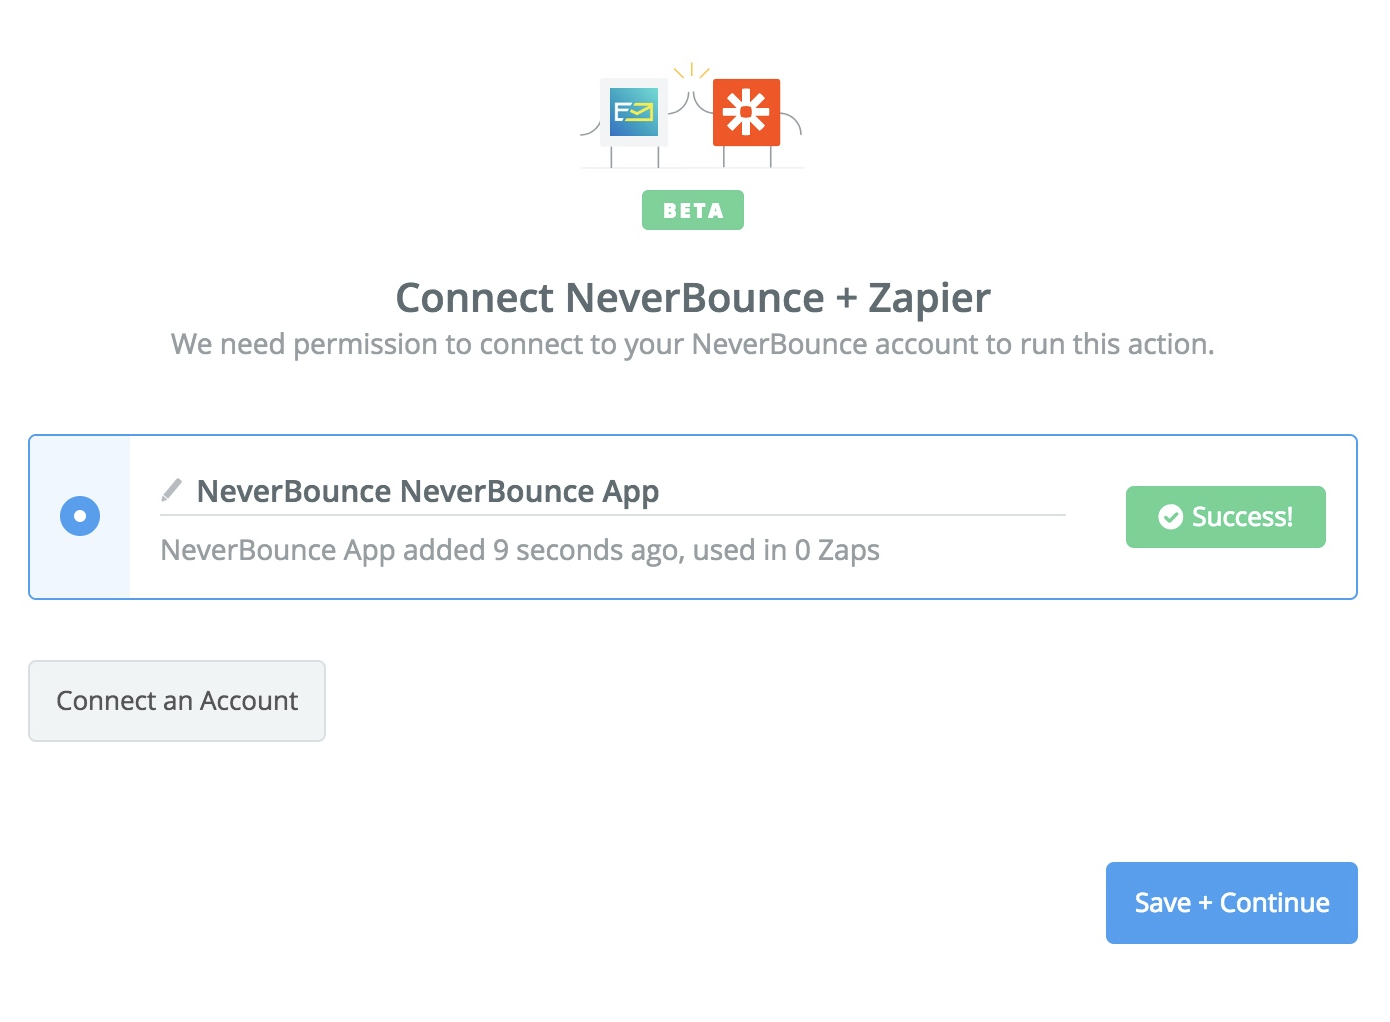 NeverBounce connection successful